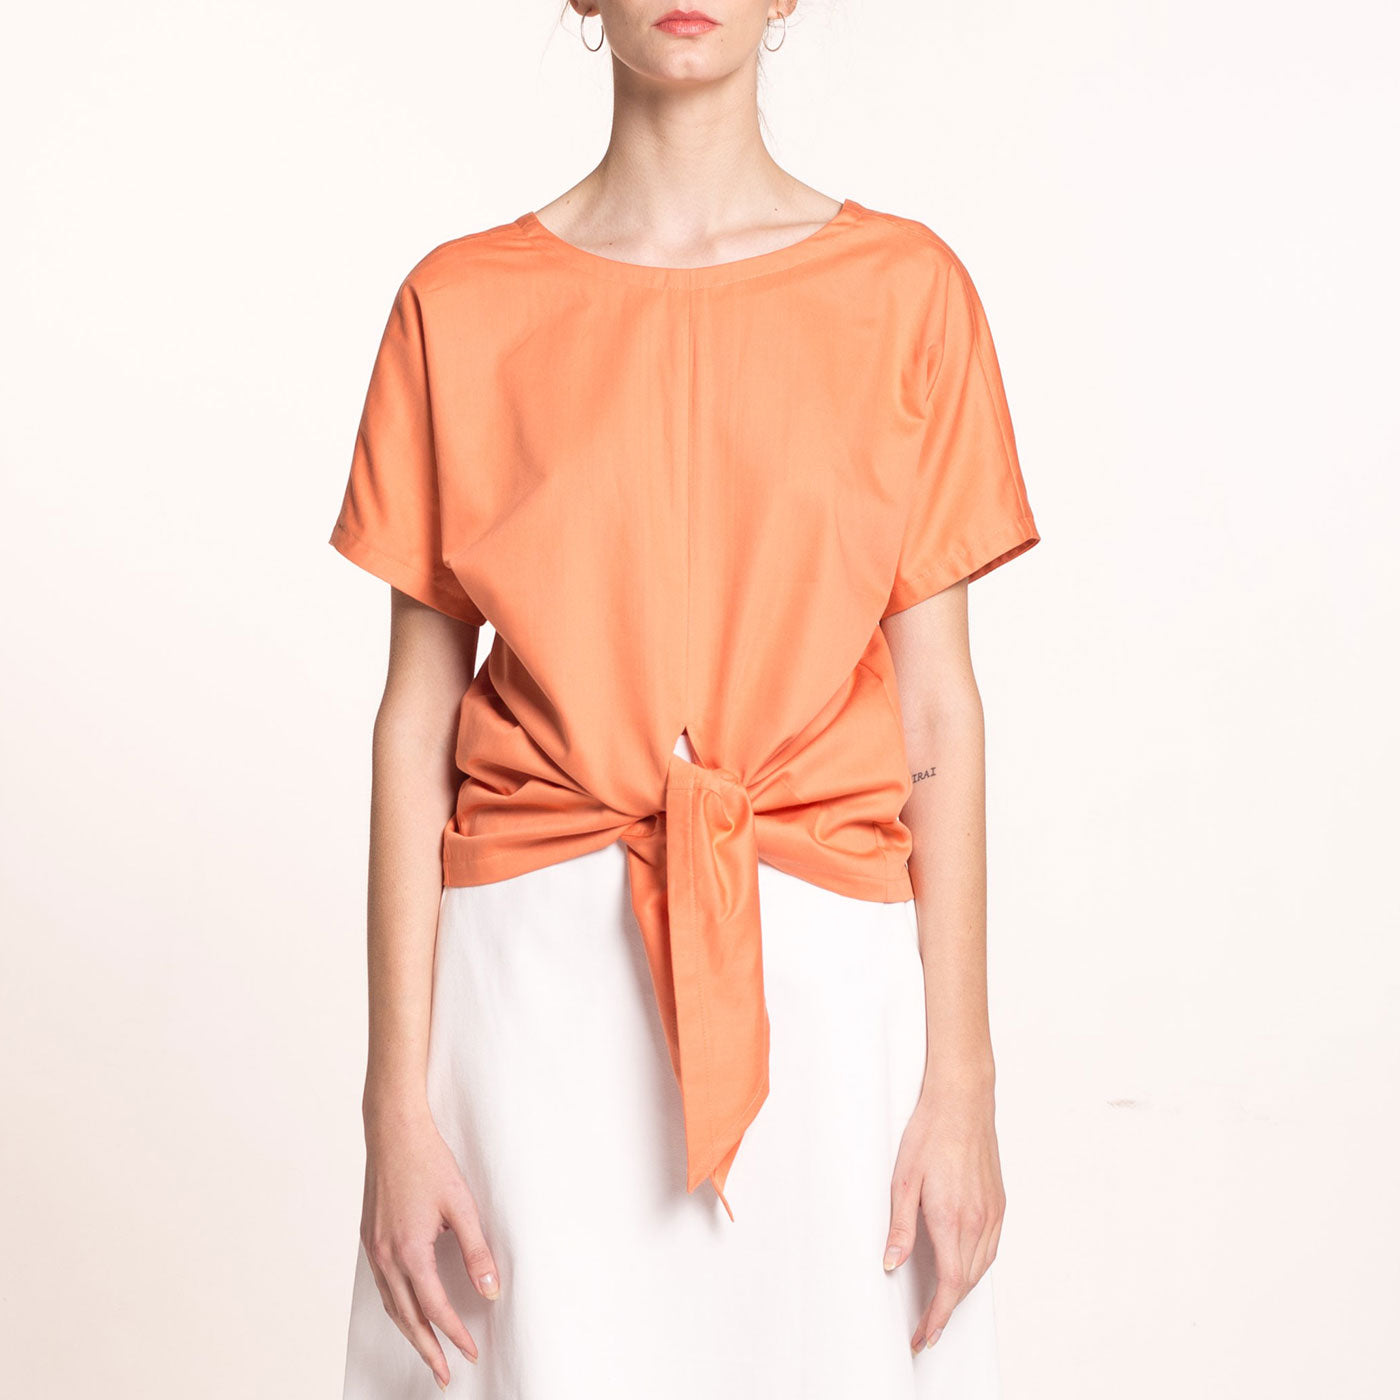 e model wears an orange, front tie, sustainable, organic cotton sateen top, with short sleeves and round neckline on the front.